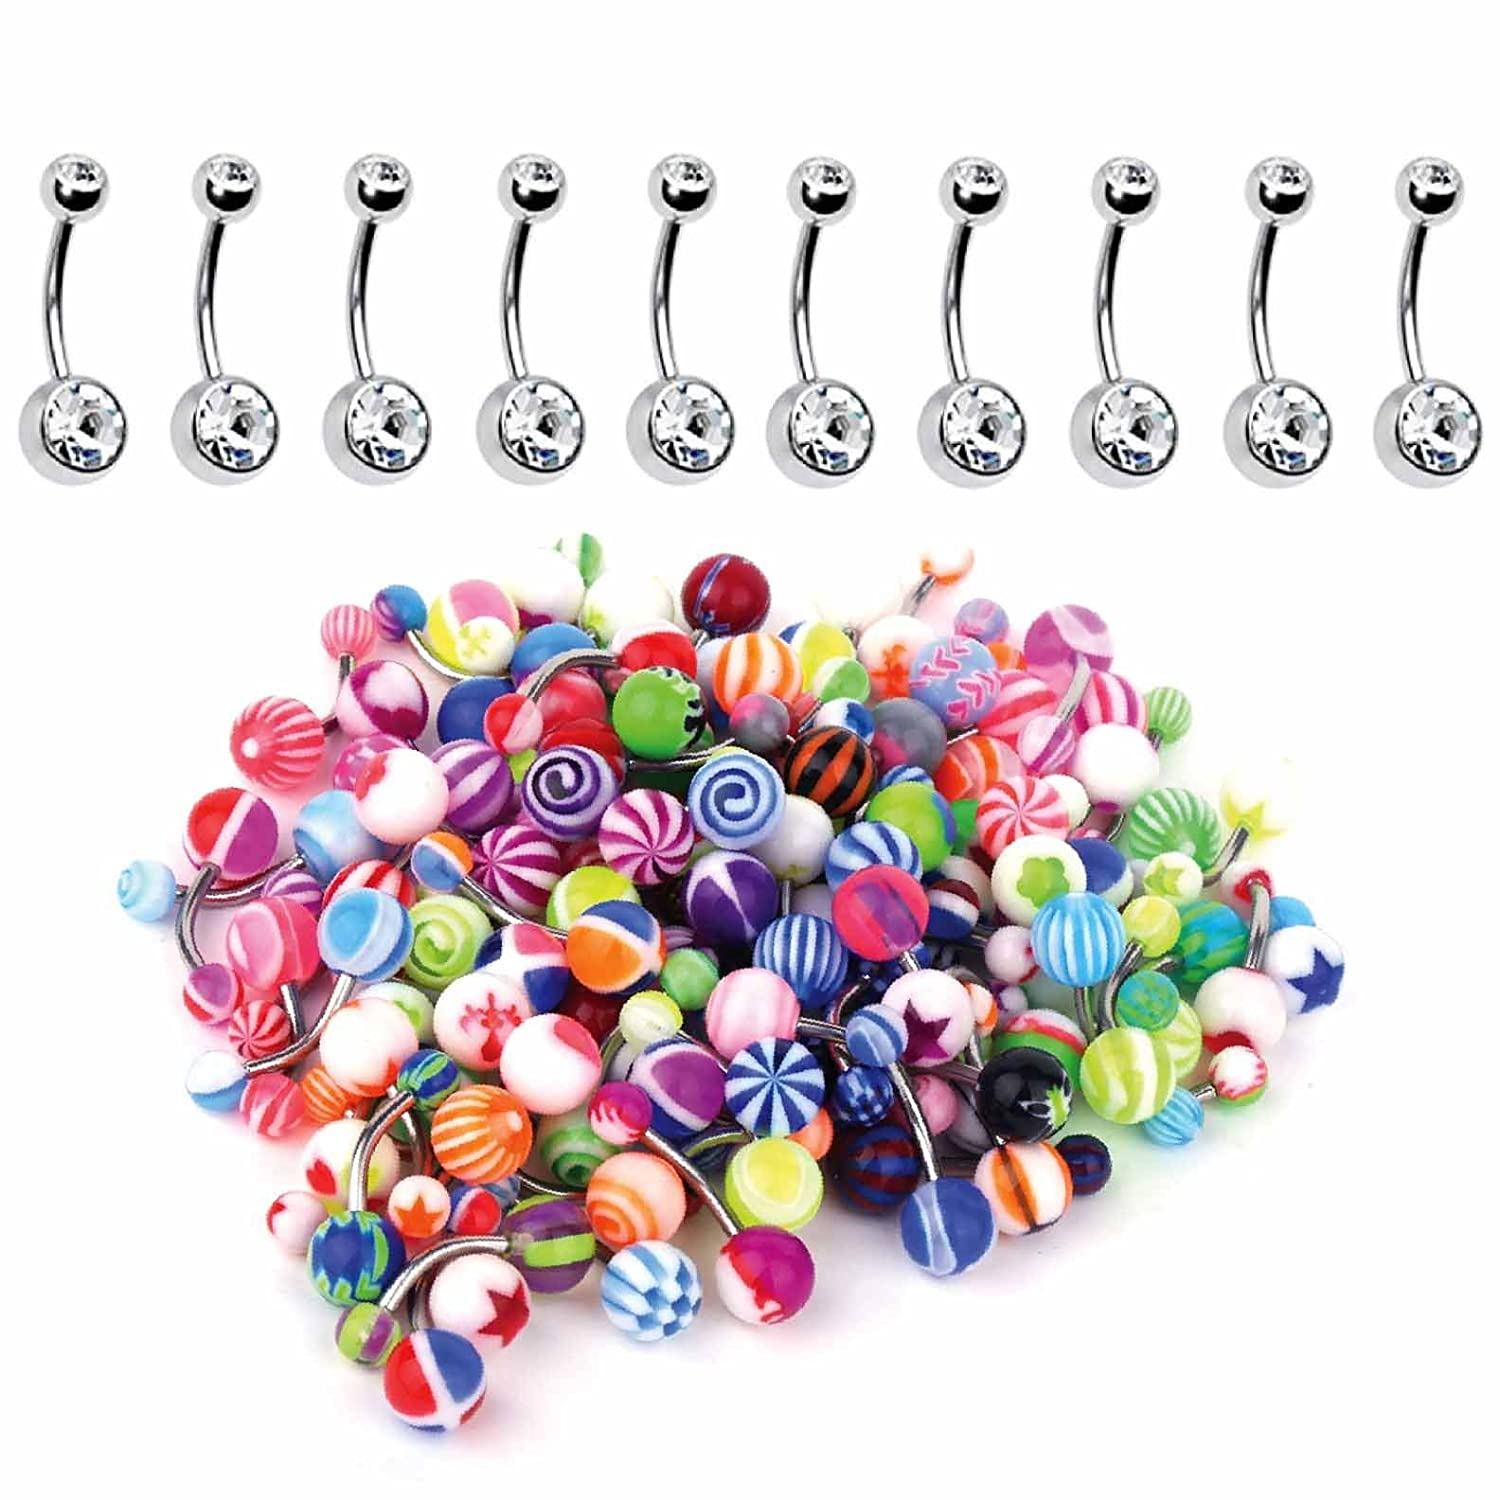 BodyJ4You 60PC Belly Button Ring Set 14G Mix CZ Steel Acrylic Bioflex Banana Bar Body Piercing Jewelry BN1745